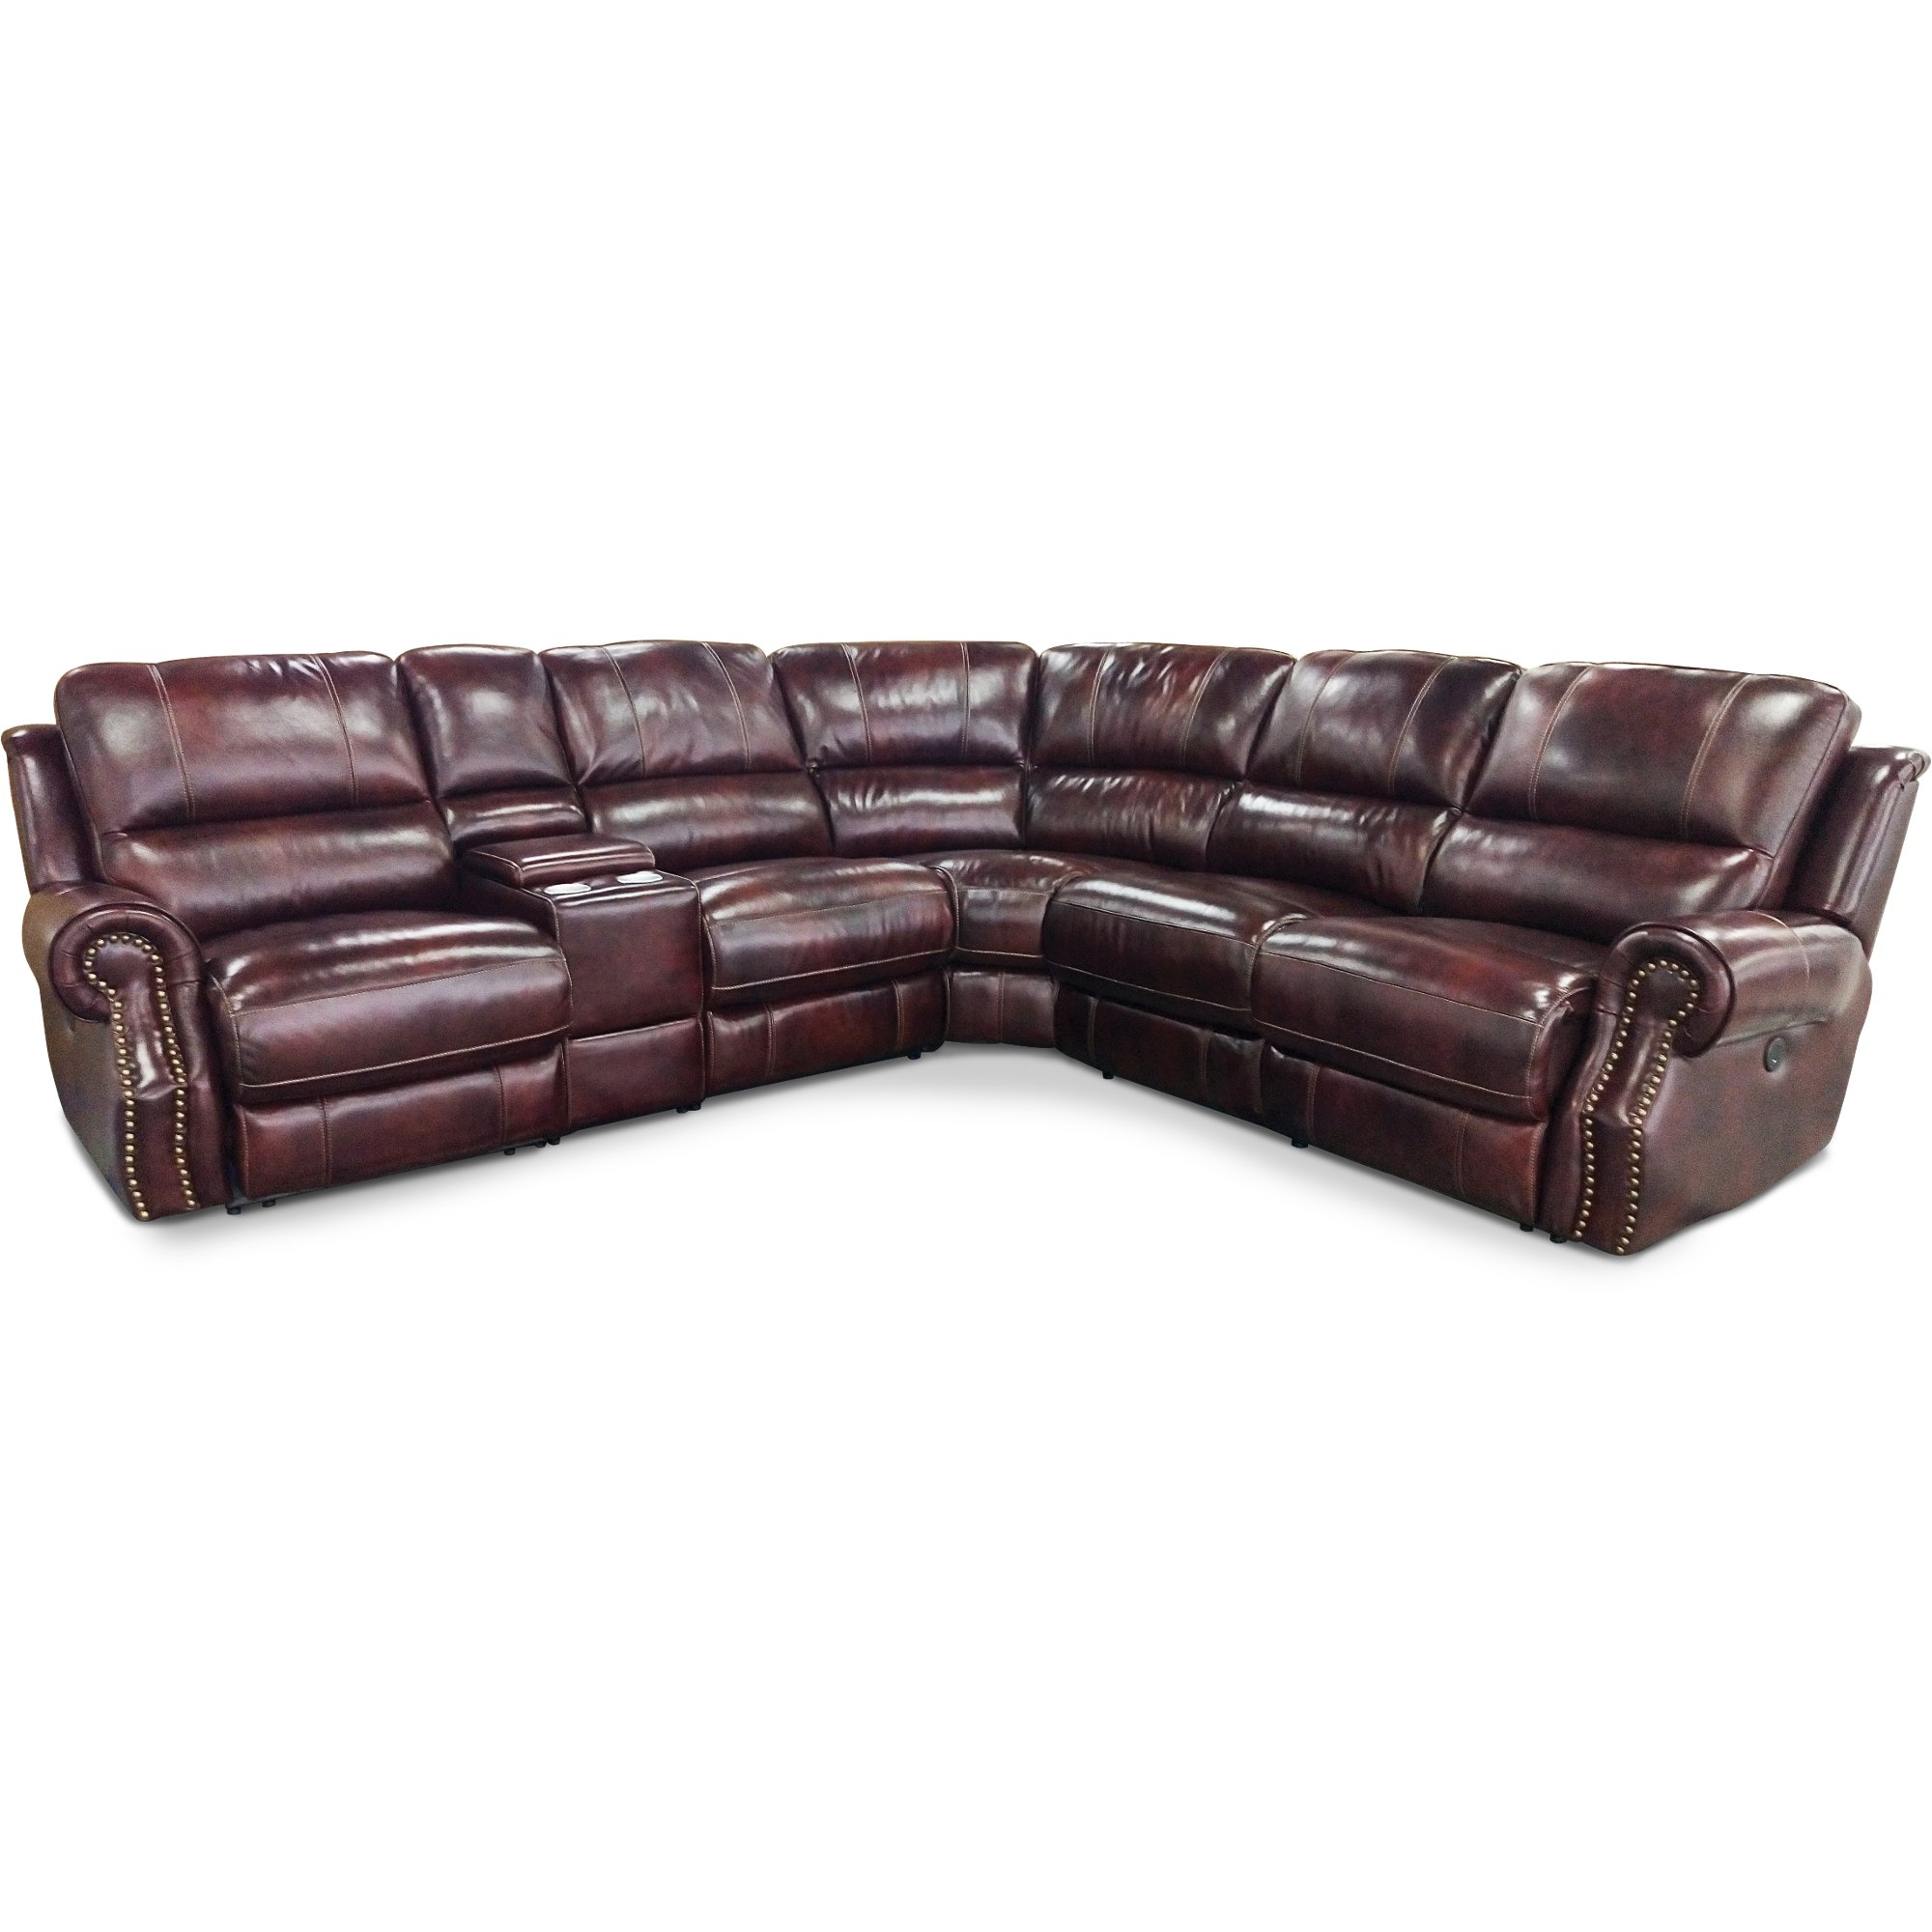 Auburn Leather Match 6 Piece Power Reclining Sectional   Nailhead | RC  Willey Furniture Store